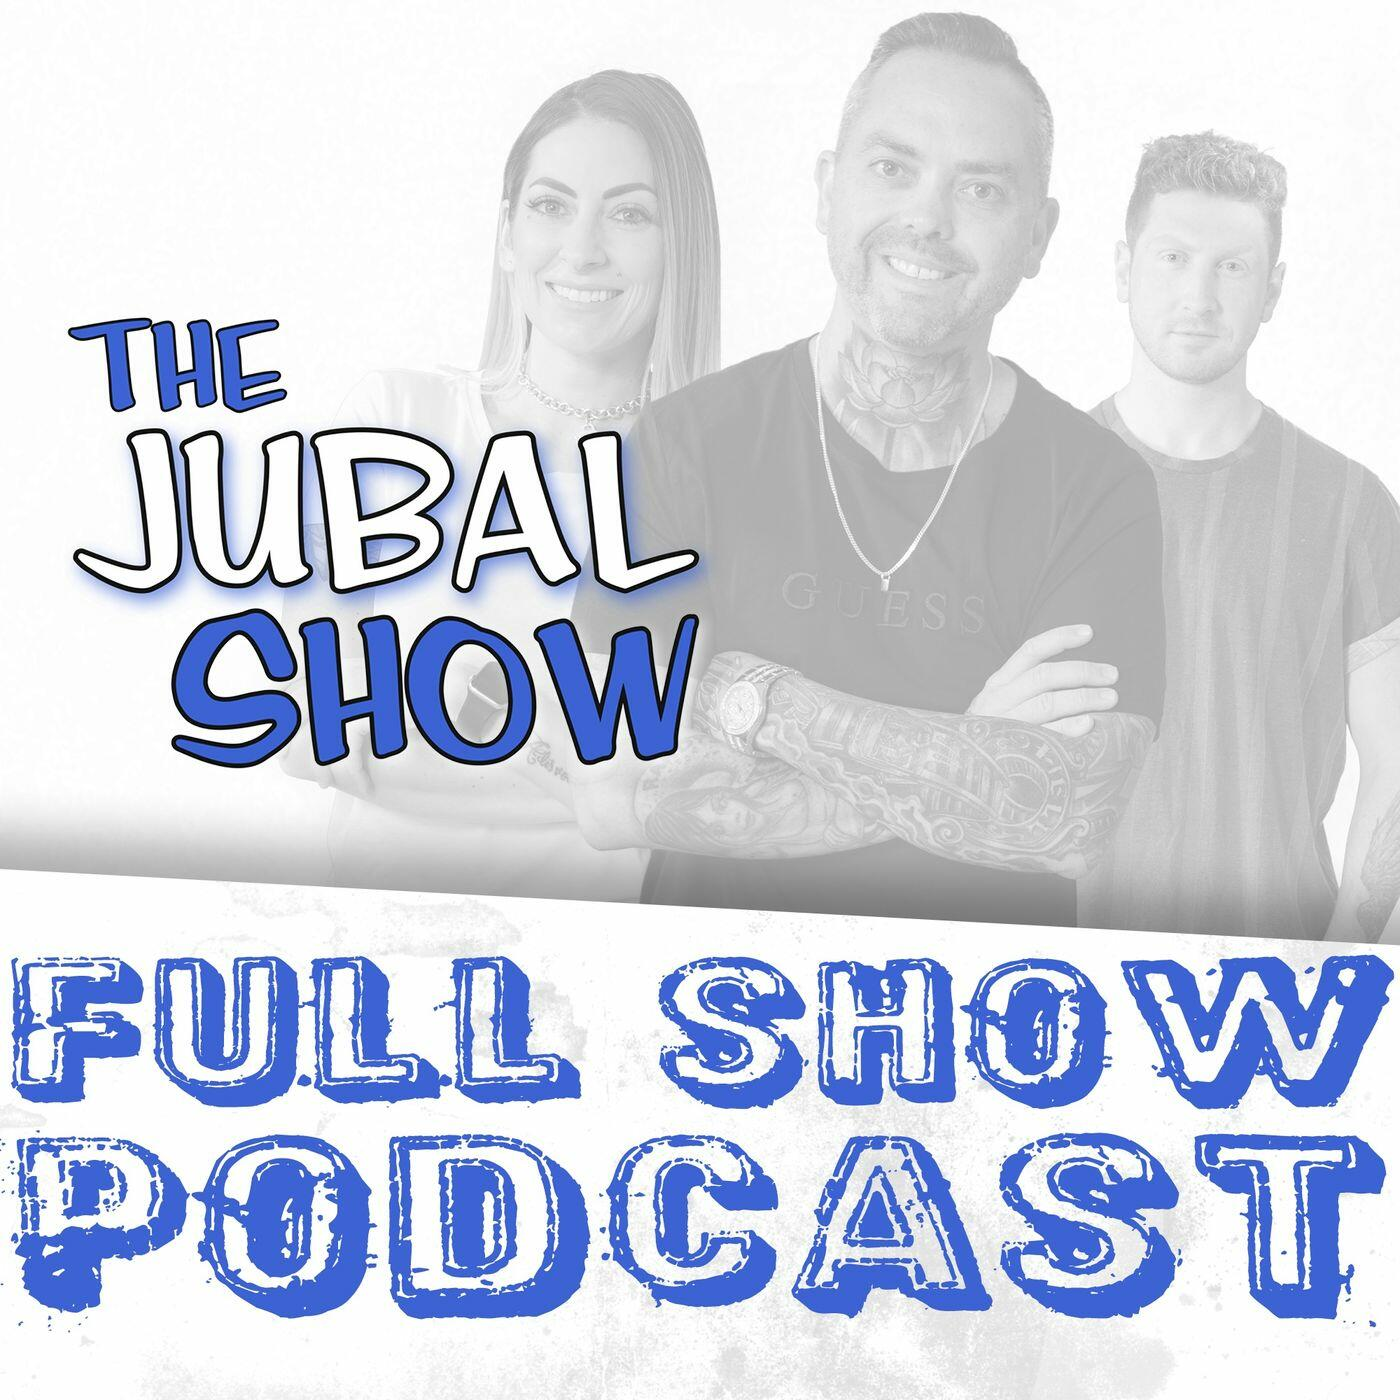 The Jubal Show